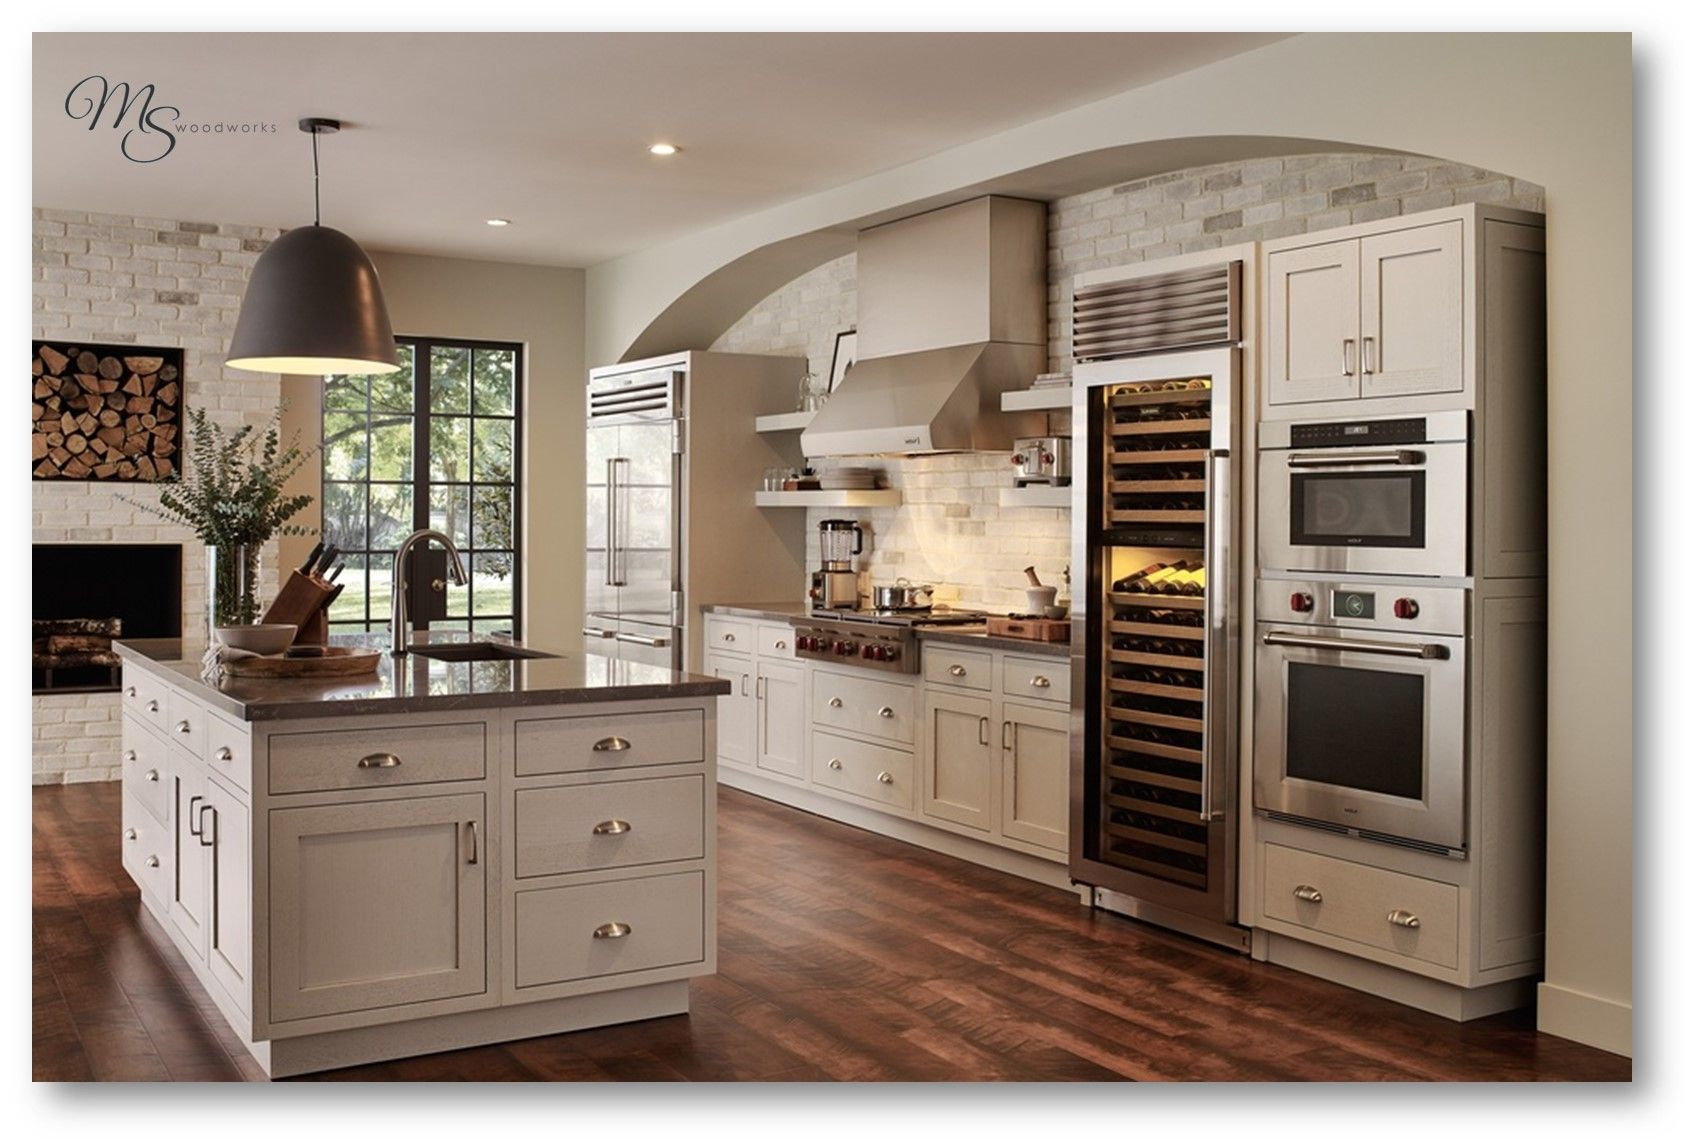 Are you in need of a kitchen makeover? Call MS Woodworks TODAY: (706) 975-9434